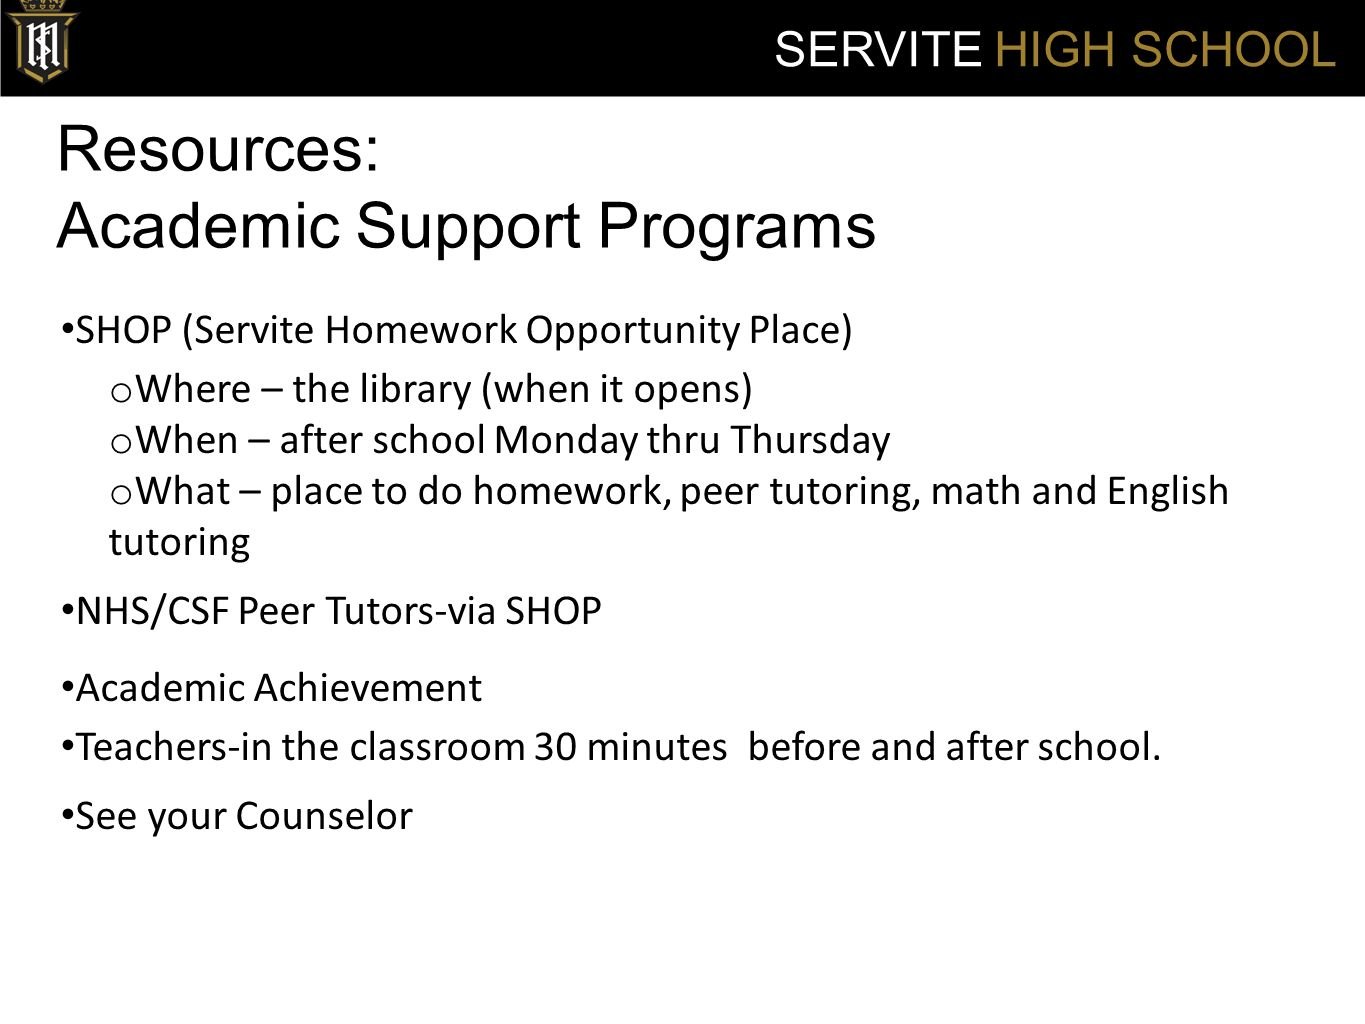 Resources: Academic Support Programs SERVITE HIGH SCHOOL SHOP (Servite Homework Opportunity Place) o Where – the library (when it opens) o When – after school Monday thru Thursday o What – place to do homework, peer tutoring, math and English tutoring NHS/CSF Peer Tutors-via SHOP Academic Achievement Teachers-in the classroom 30 minutes before and after school.